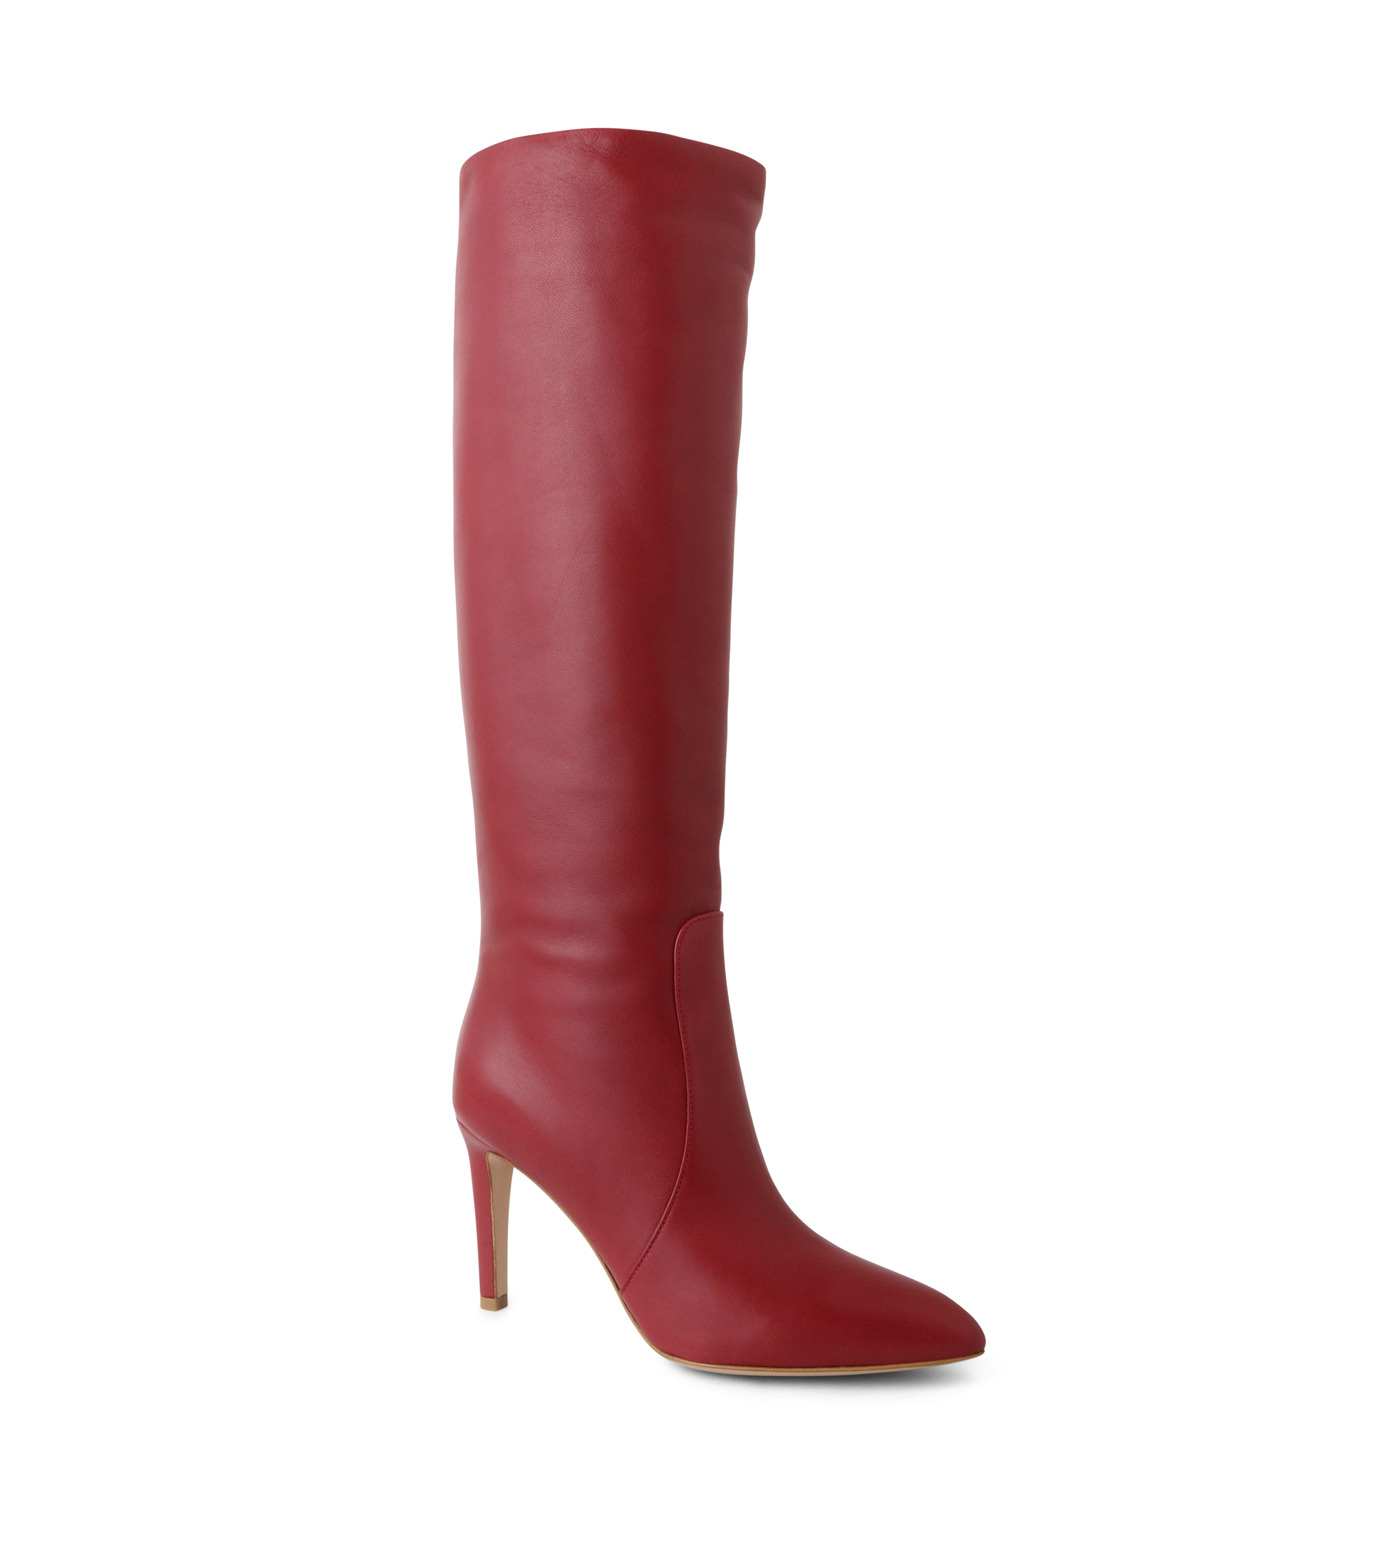 Gianvito Rossi(ジャンヴィト ロッシ)のSlouchy Boots-RED(ブーツ/boots)-80835-62 拡大詳細画像1